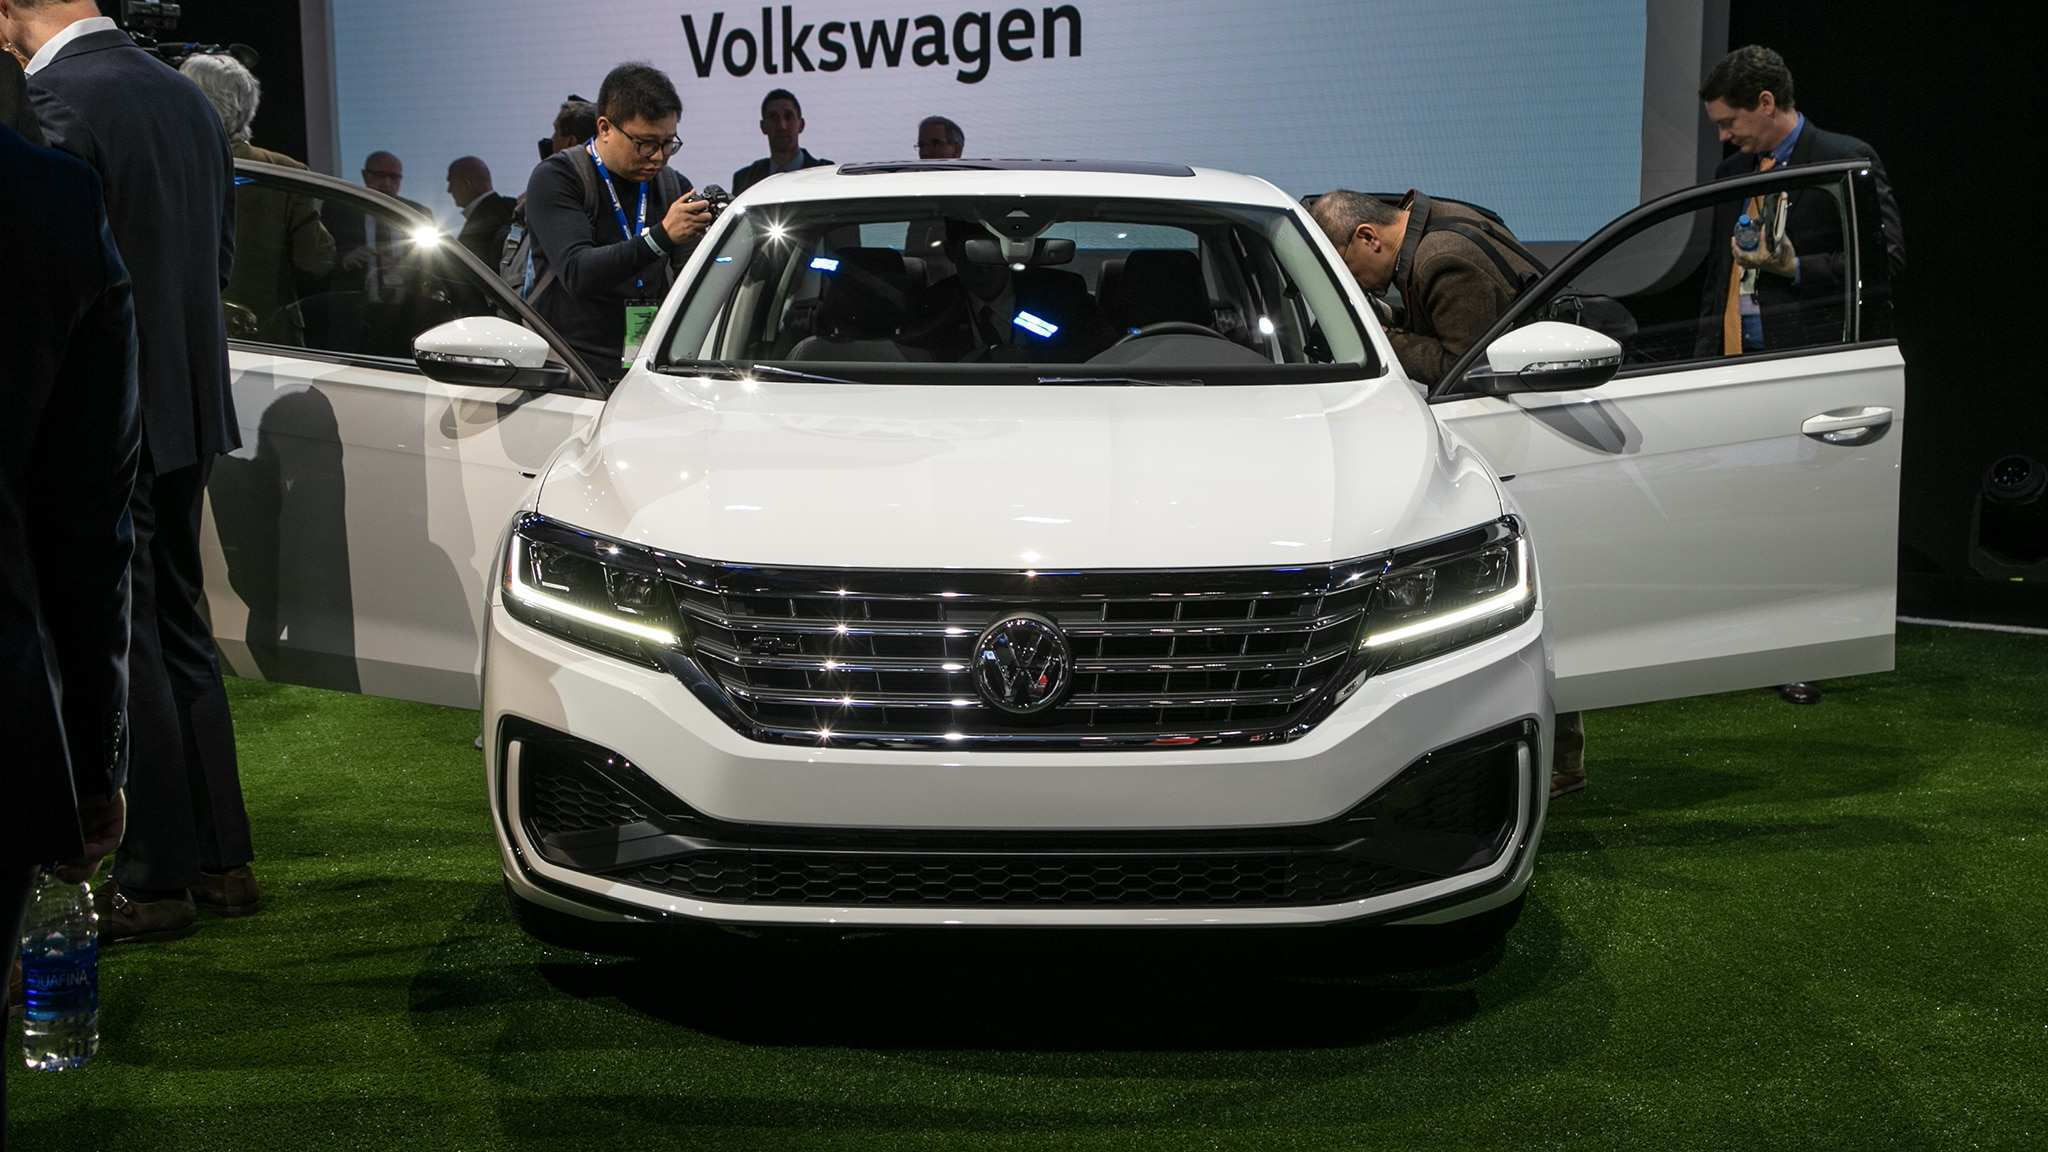 78 The Best 2020 VW Passat Tdi Redesign